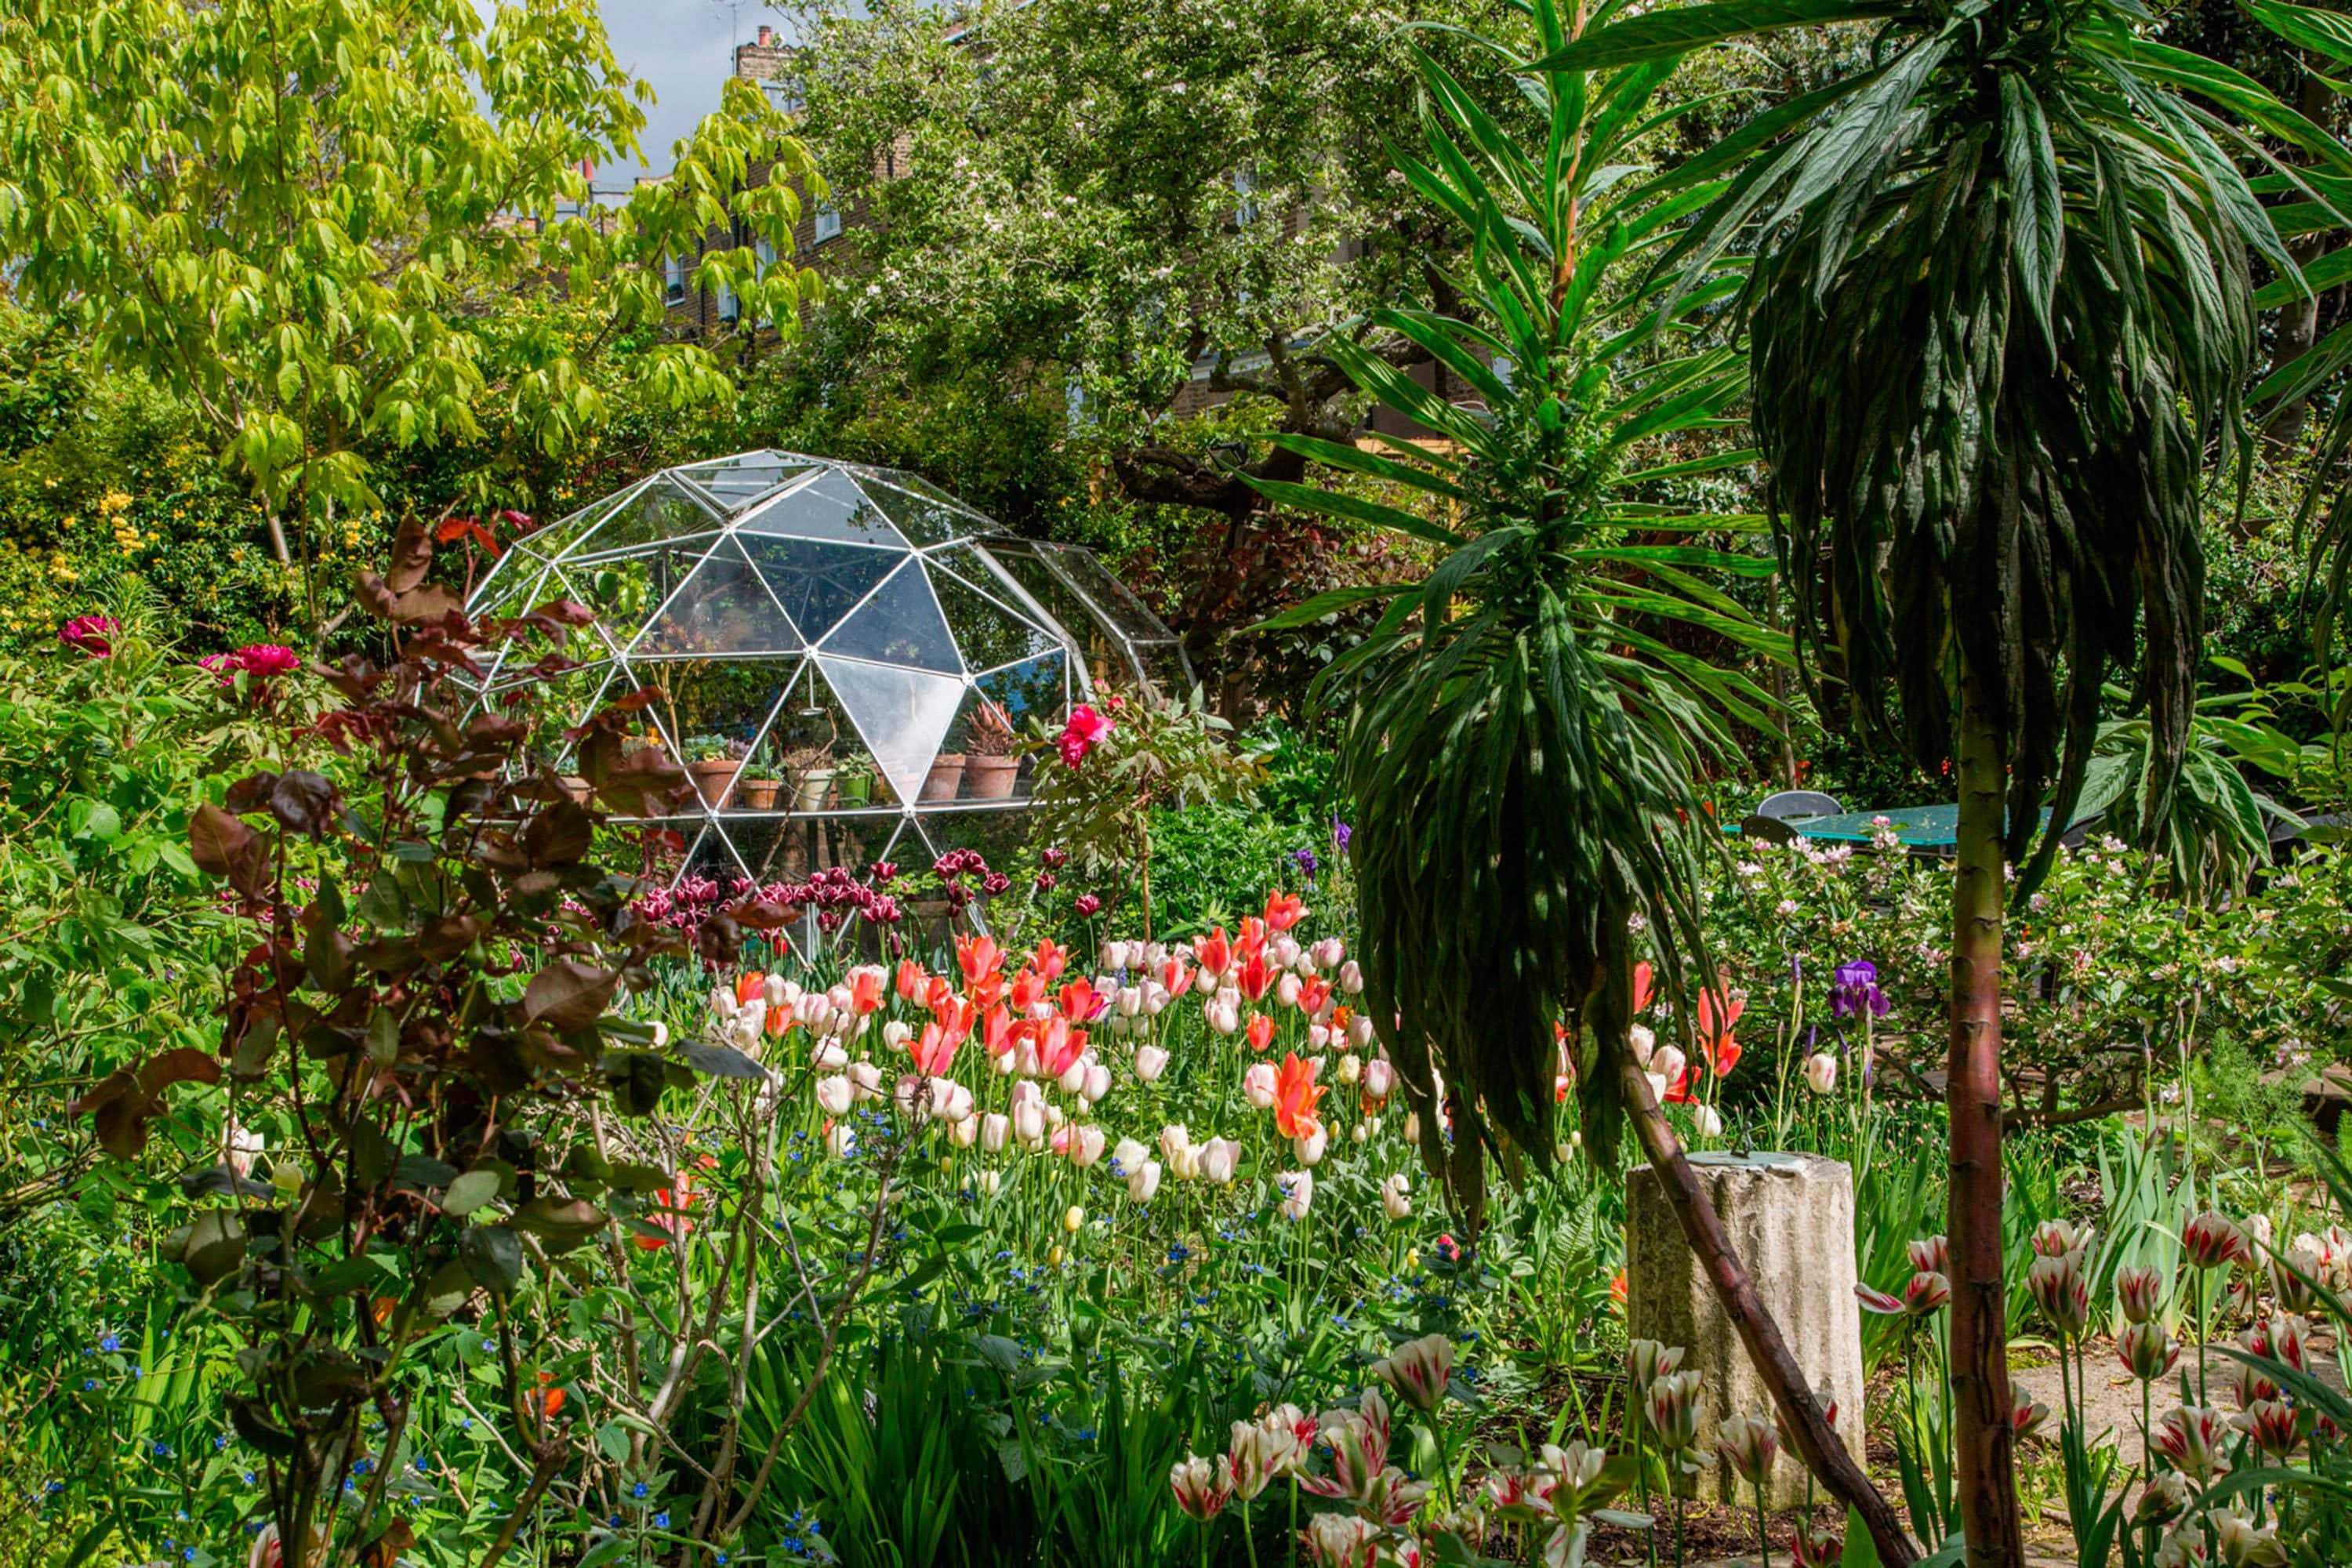 Garden with igloo greenhouse. Image courtesy of Matthew Bruce